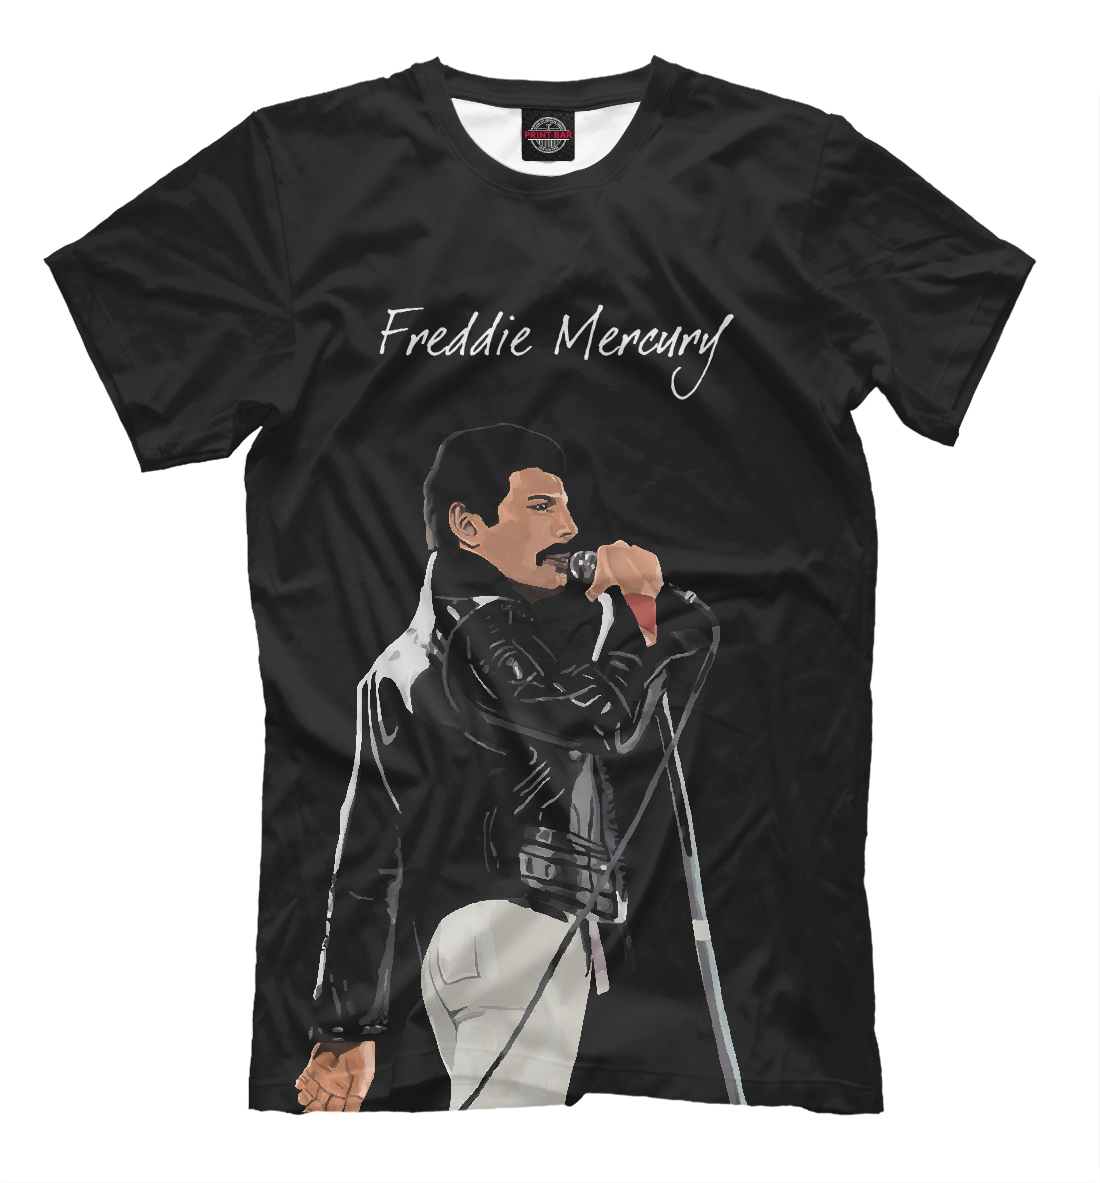 Купить Freddie Mercury Queen, Printbar, Футболки, QUE-311152-fut-2